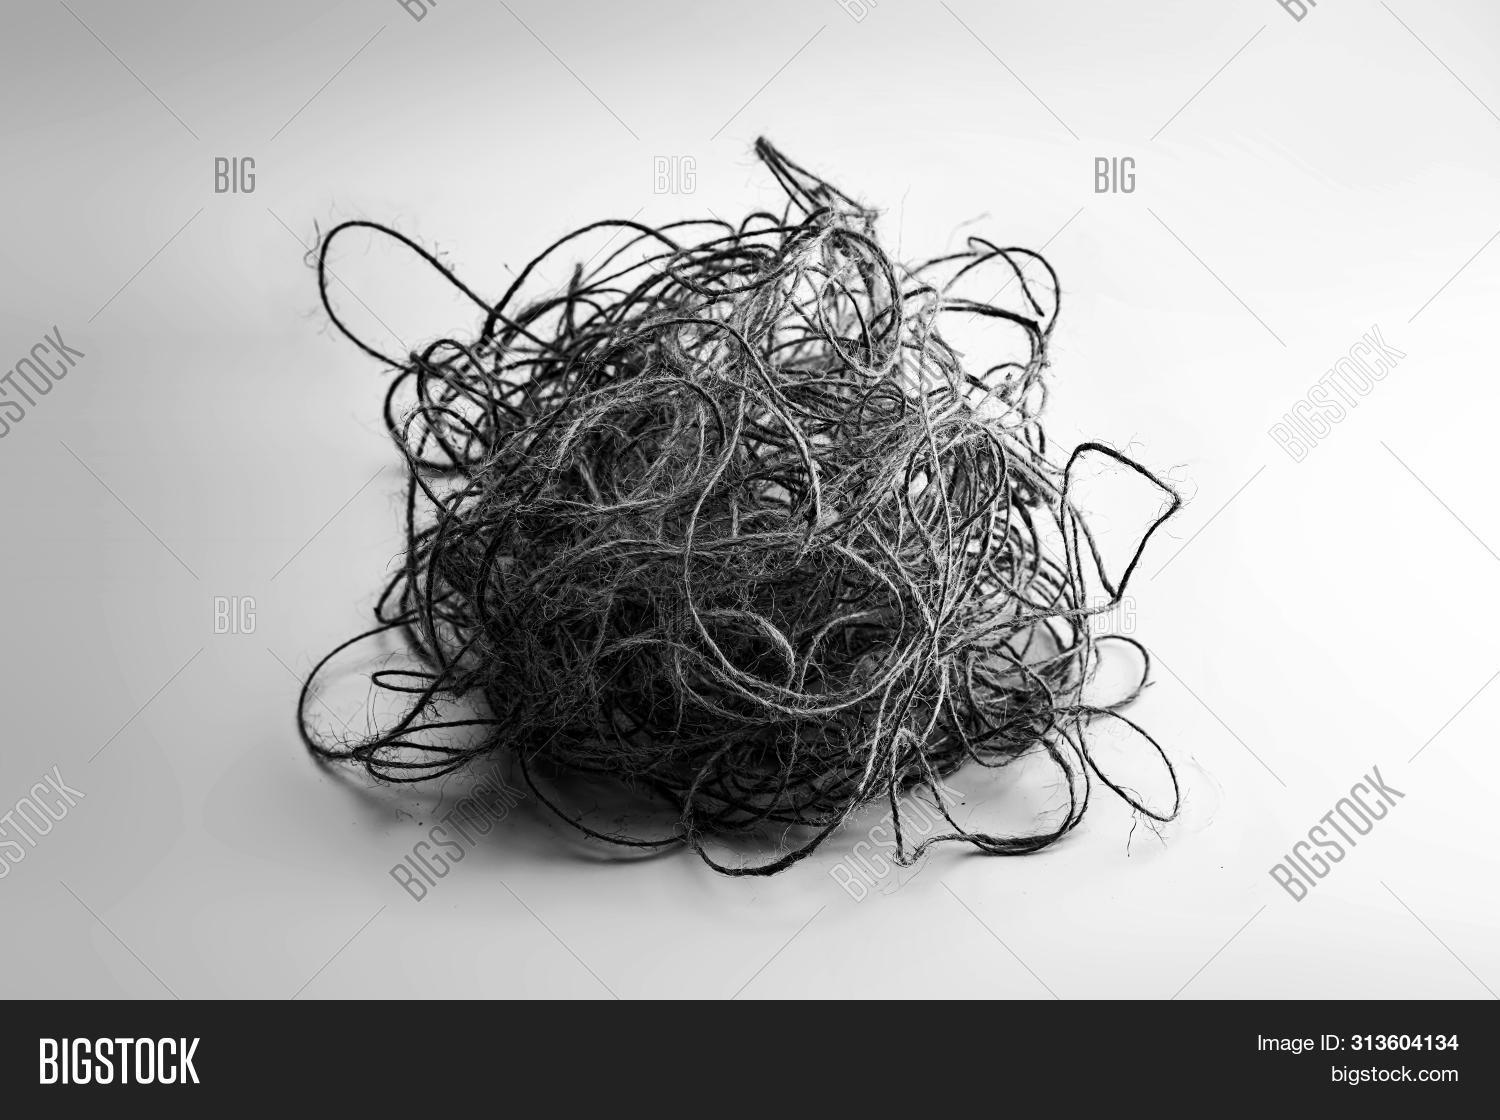 Unorganized Mess Image Photo Free Trial Bigstock